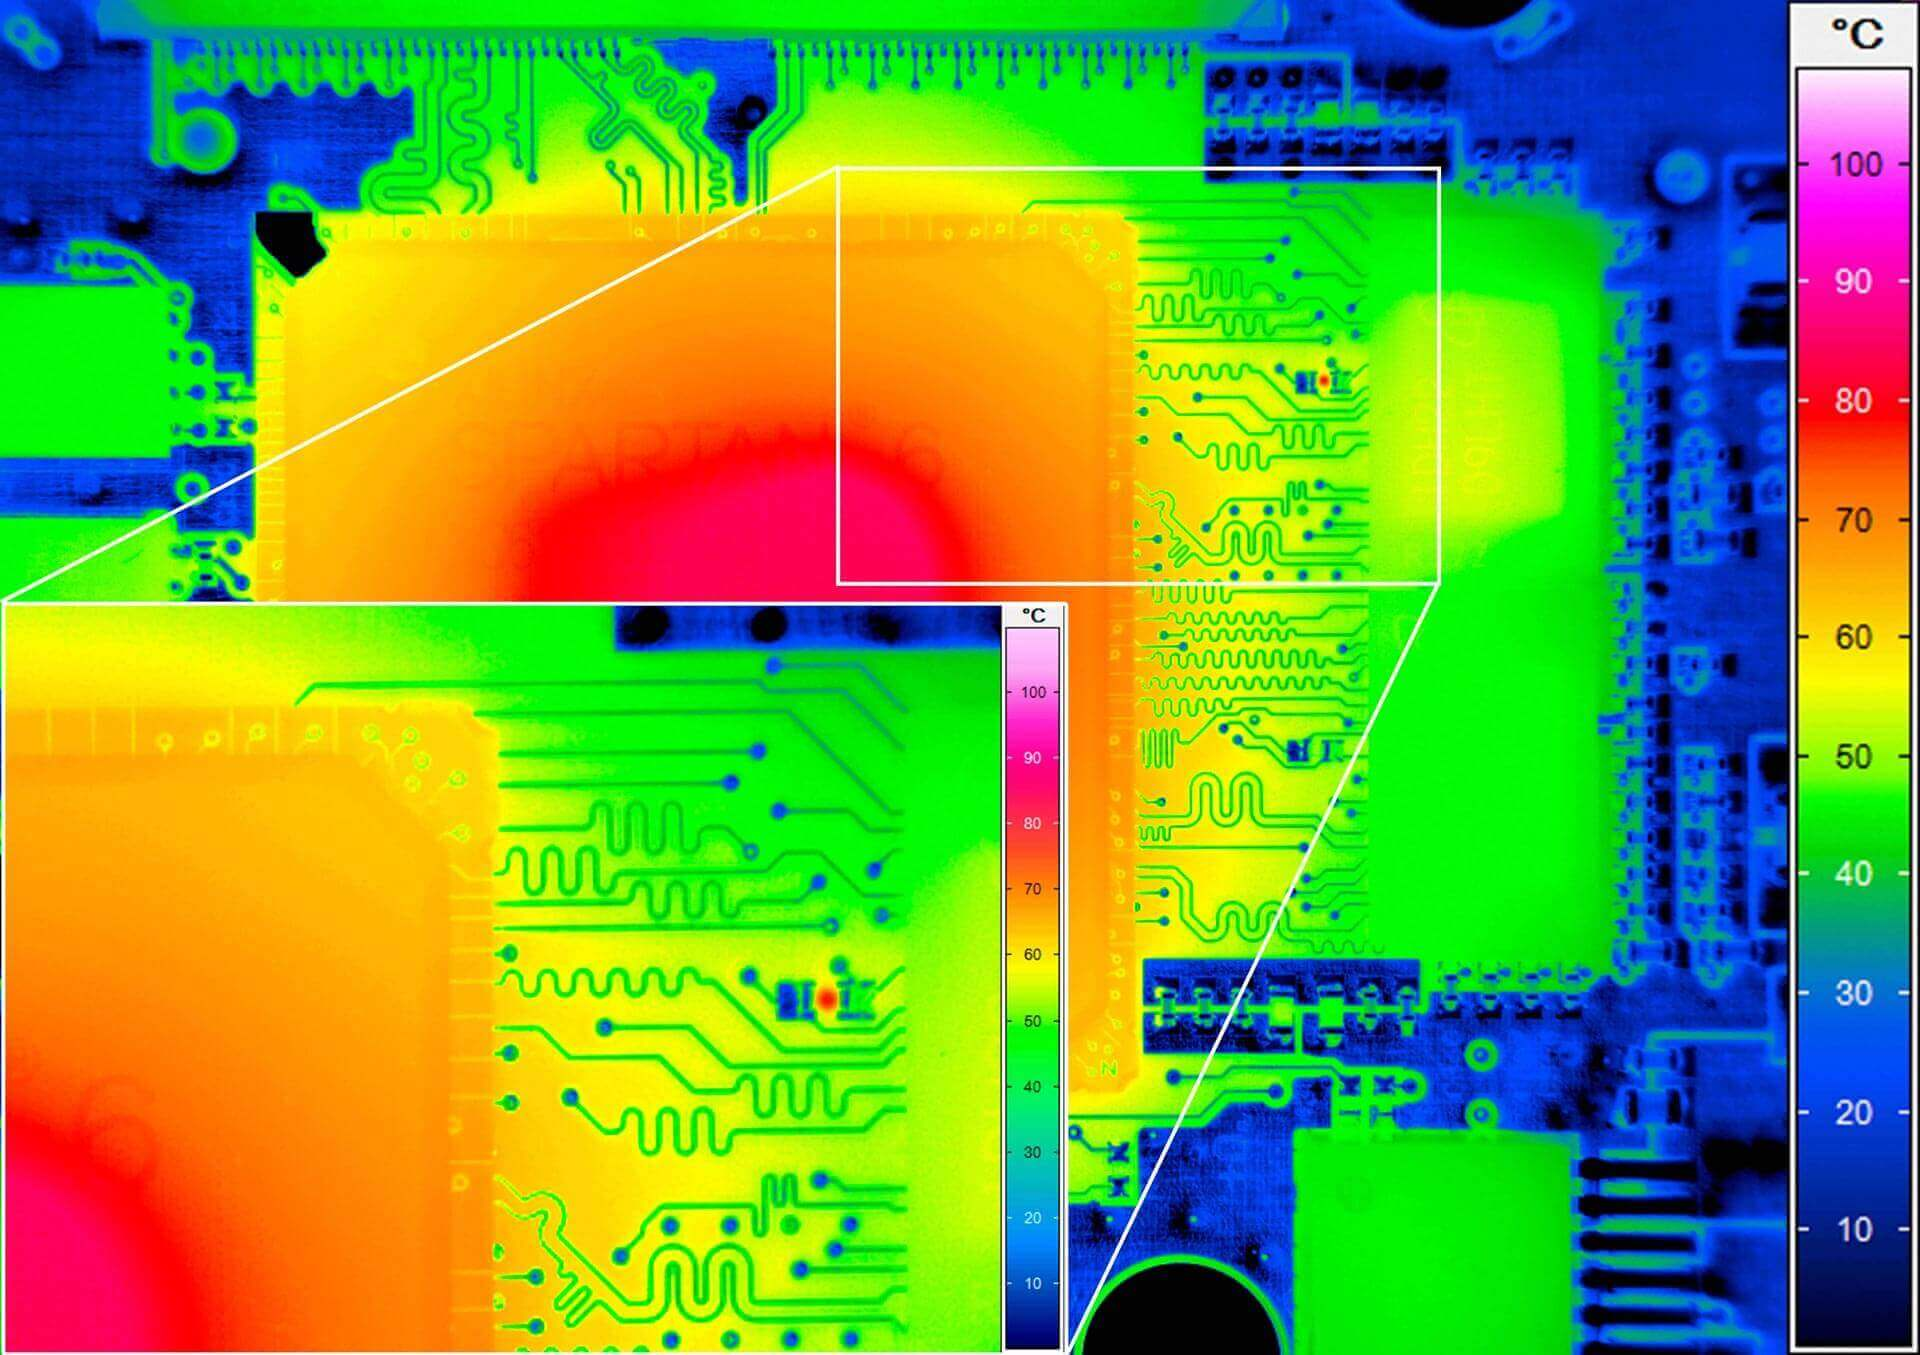 Micro-thermography with detailed image